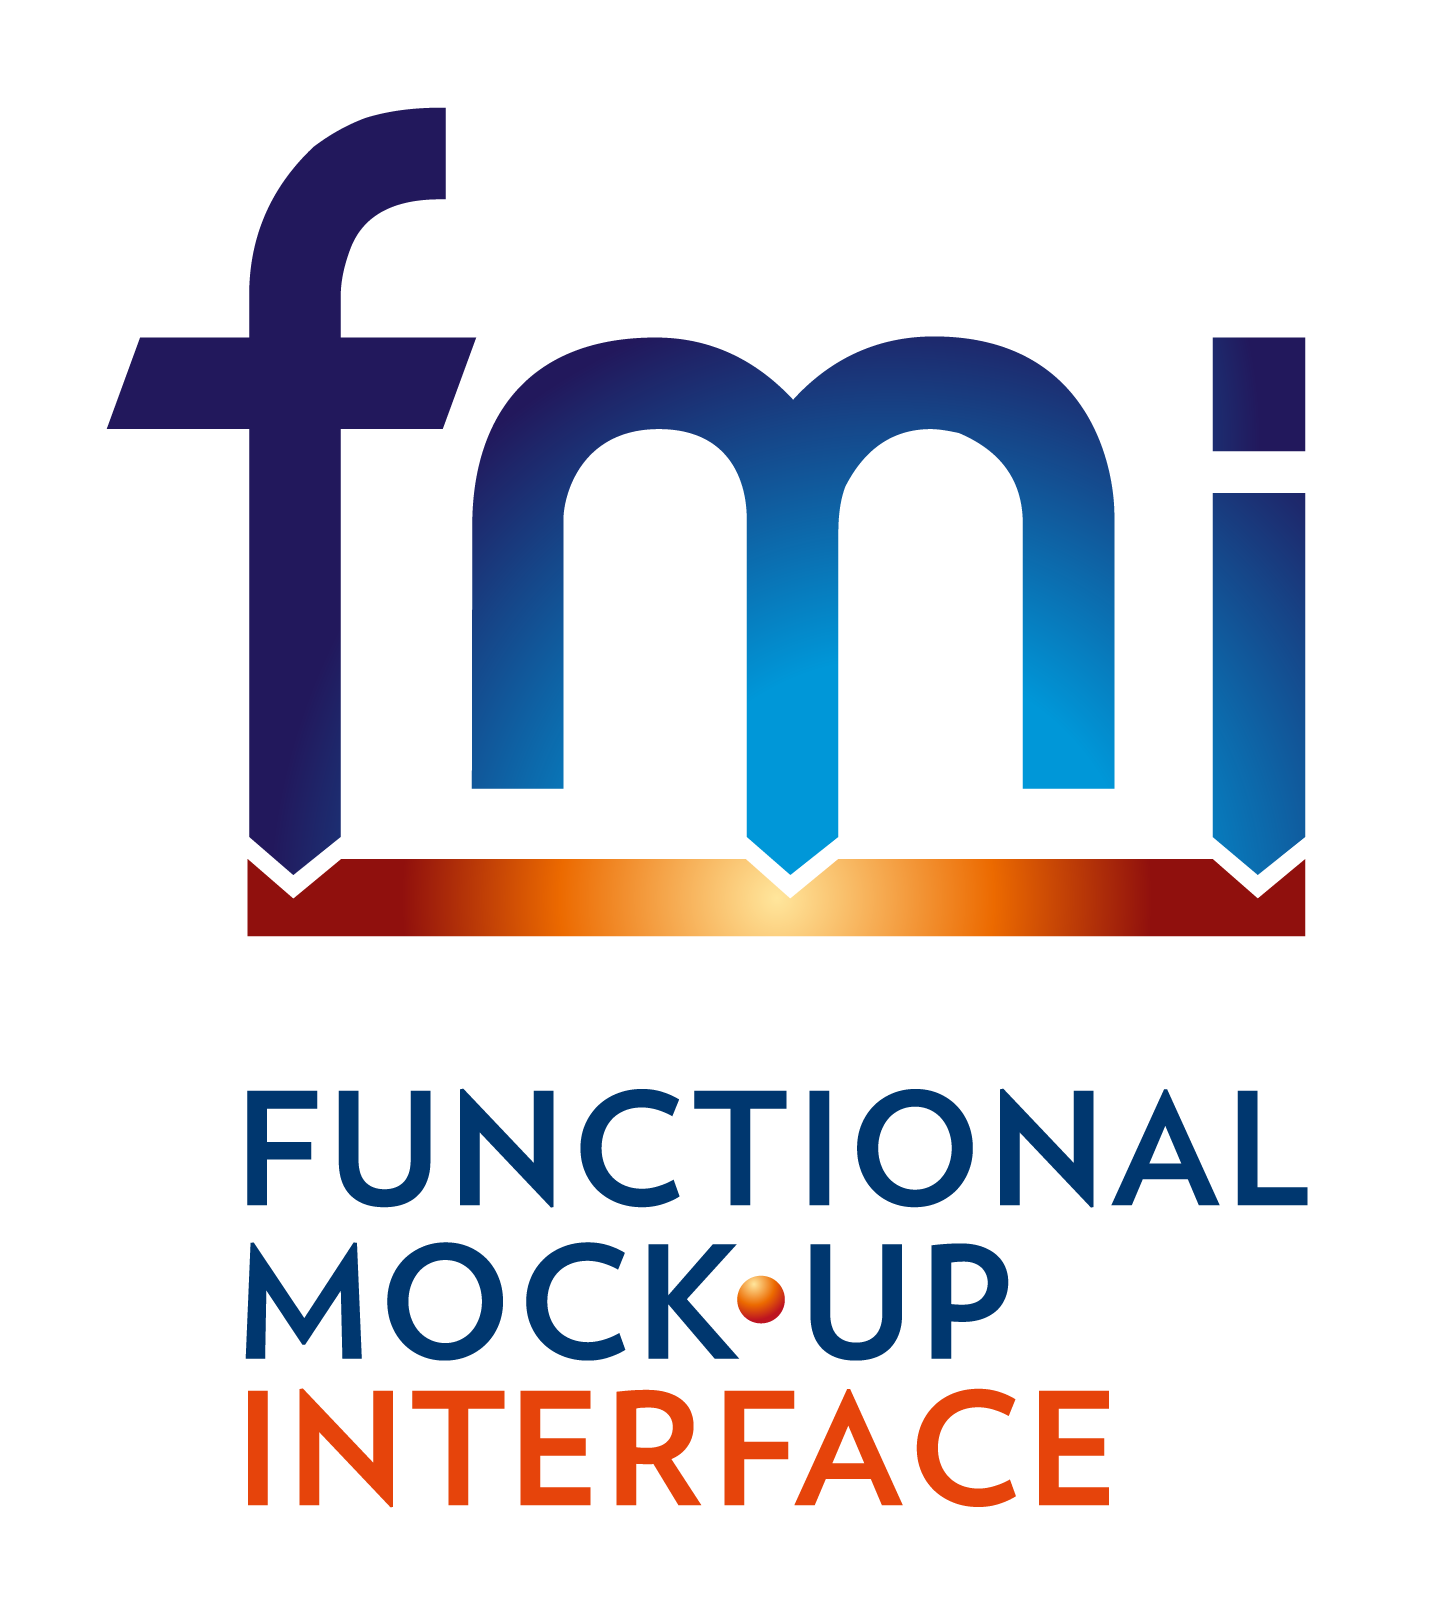 FMI: Functional Mock-up Interface